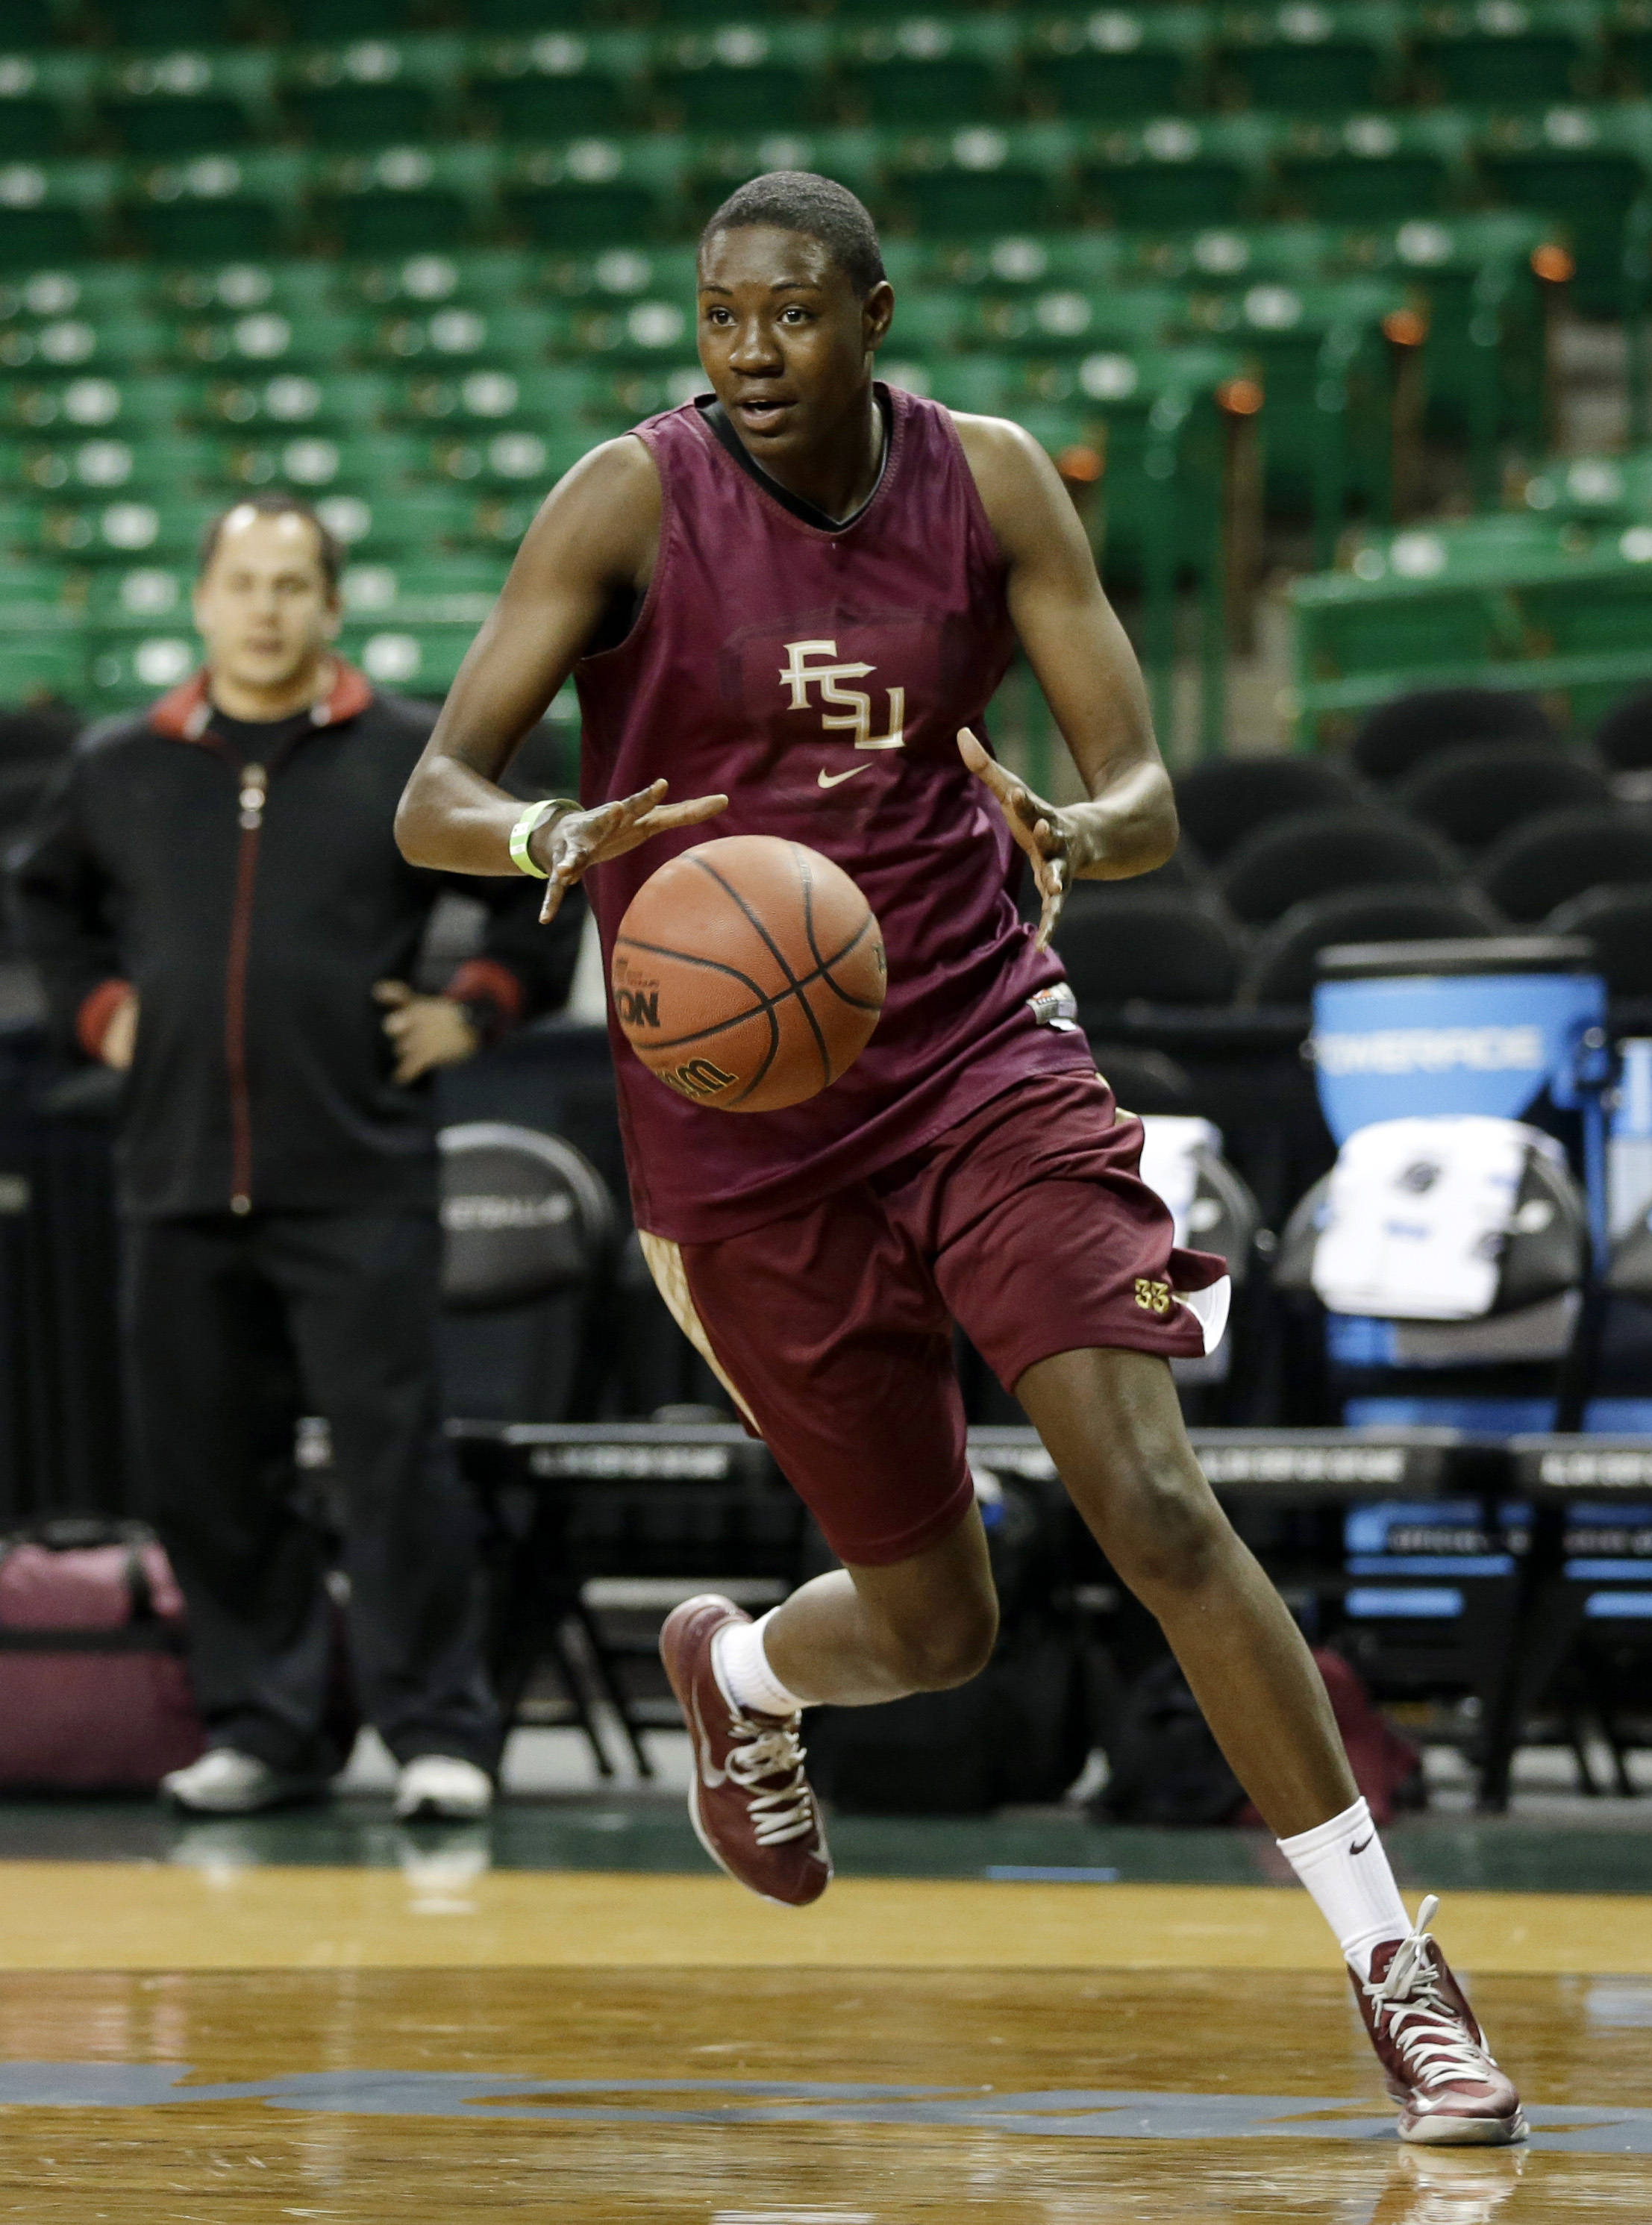 Florida State forward Natasha Howard runs drills during practice for a first-round game in the women's NCAA college basketball tournament Saturday, March 23, 2013, in Waco, Texas. FSU will play Princeton on Sunday. (AP Photo/Tony Gutierrez)